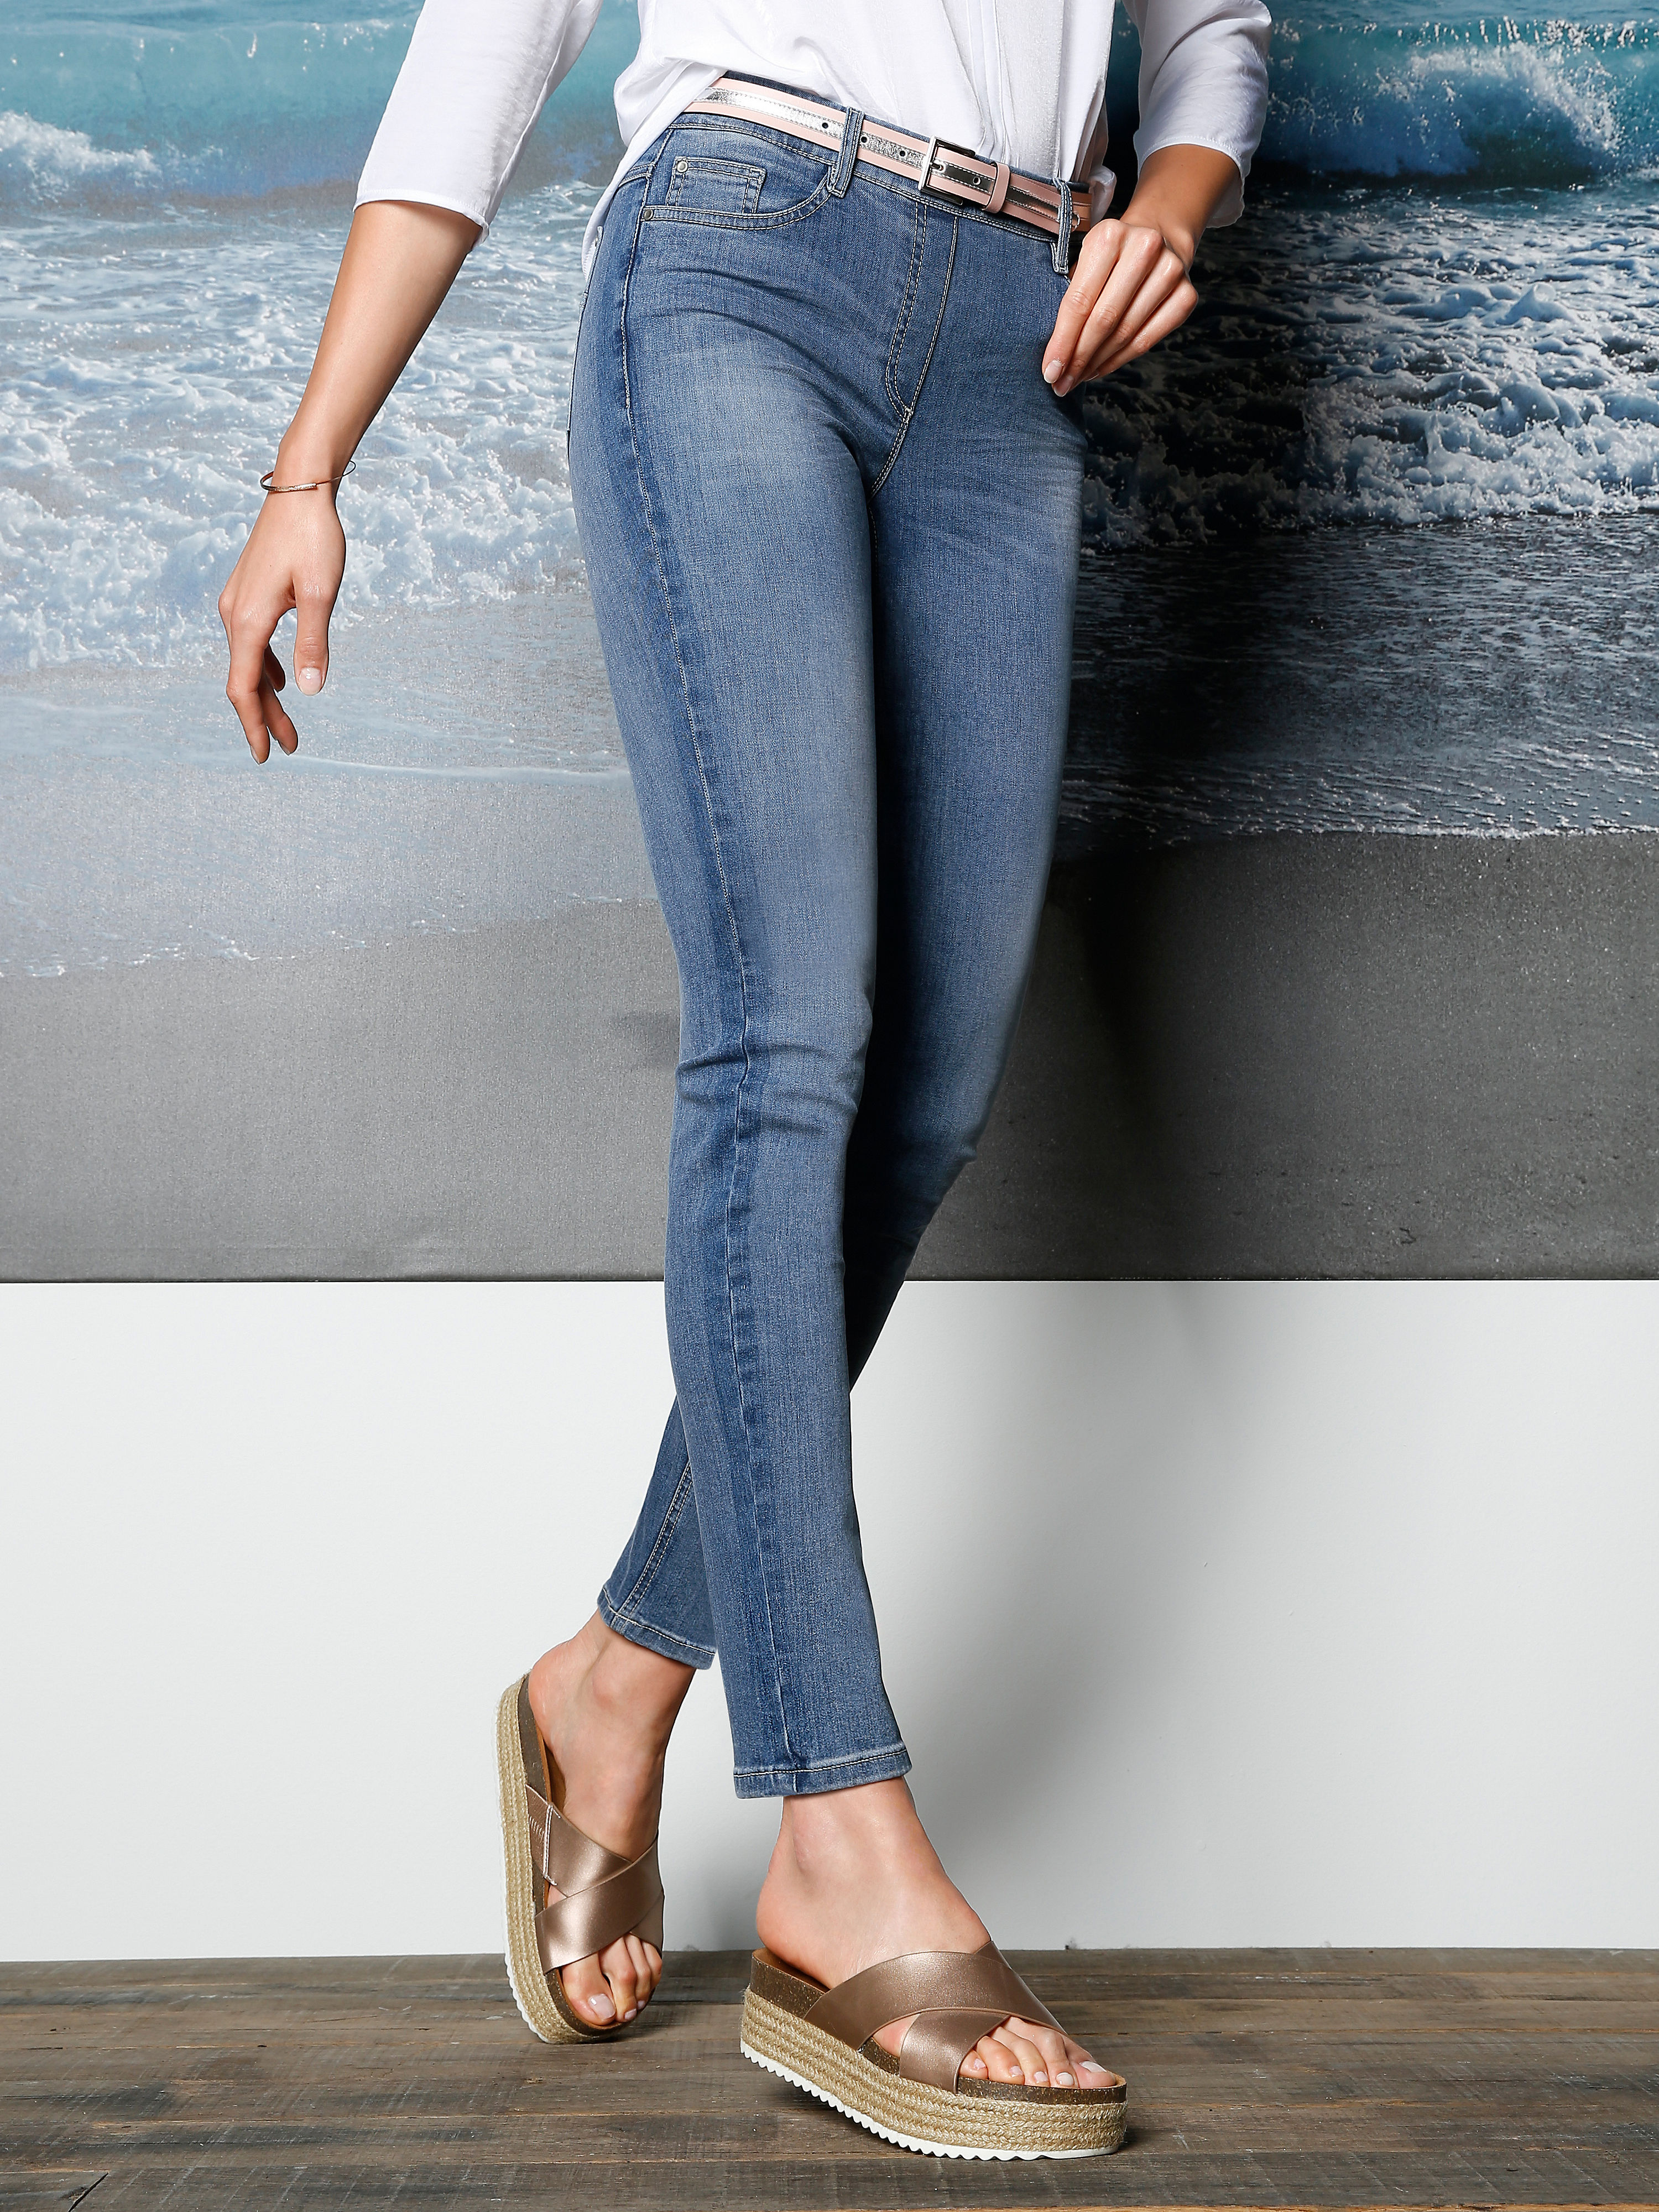 jeggings (28)